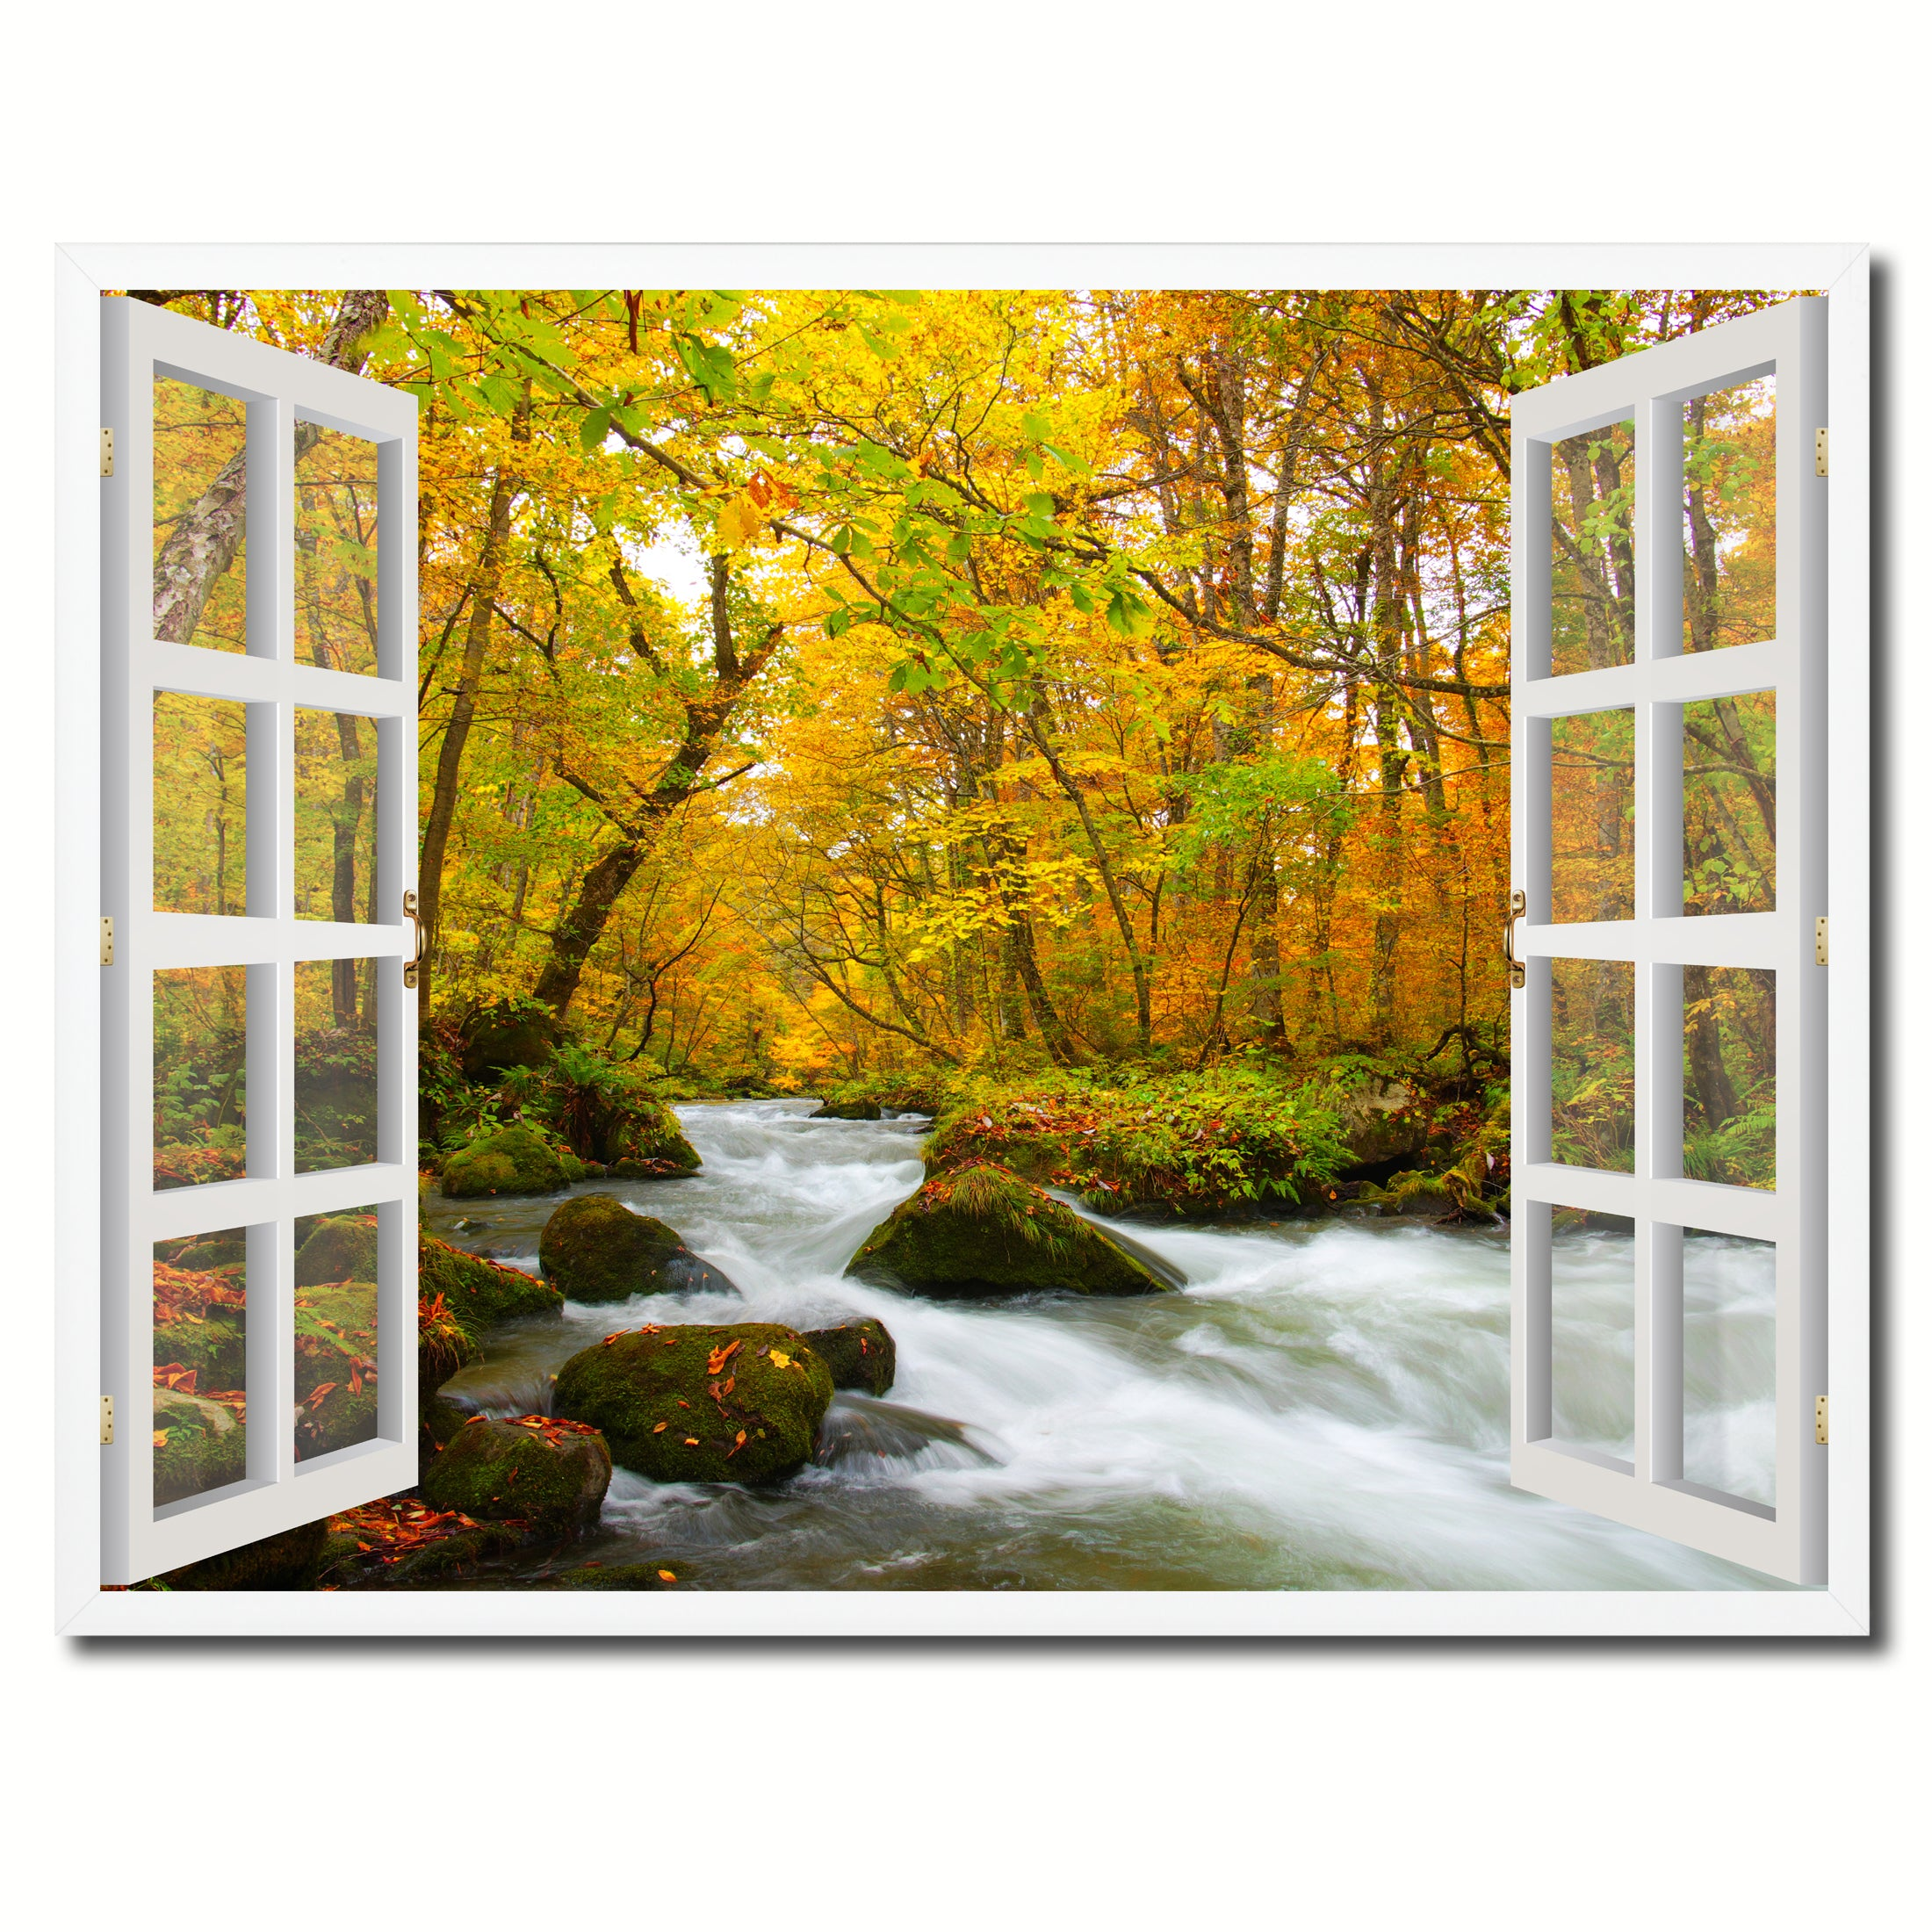 Autumn River Picture Window Wall Art Home Decor Gift Ideas, Kitchen ...